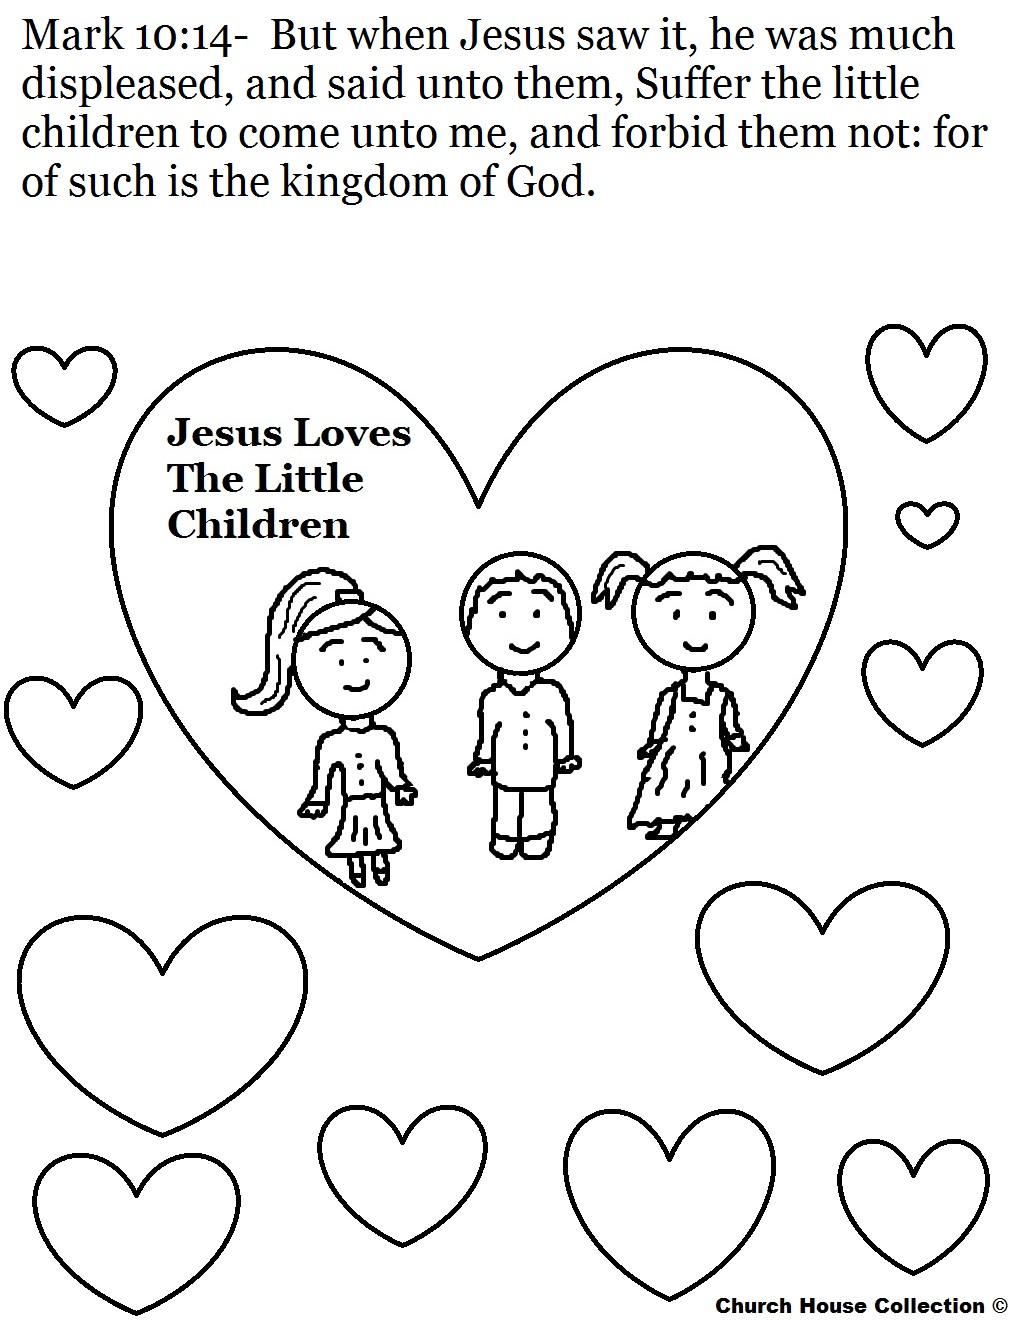 Jesus Loves the Little Children Coloring Pages  Printable 6g - Free For kids